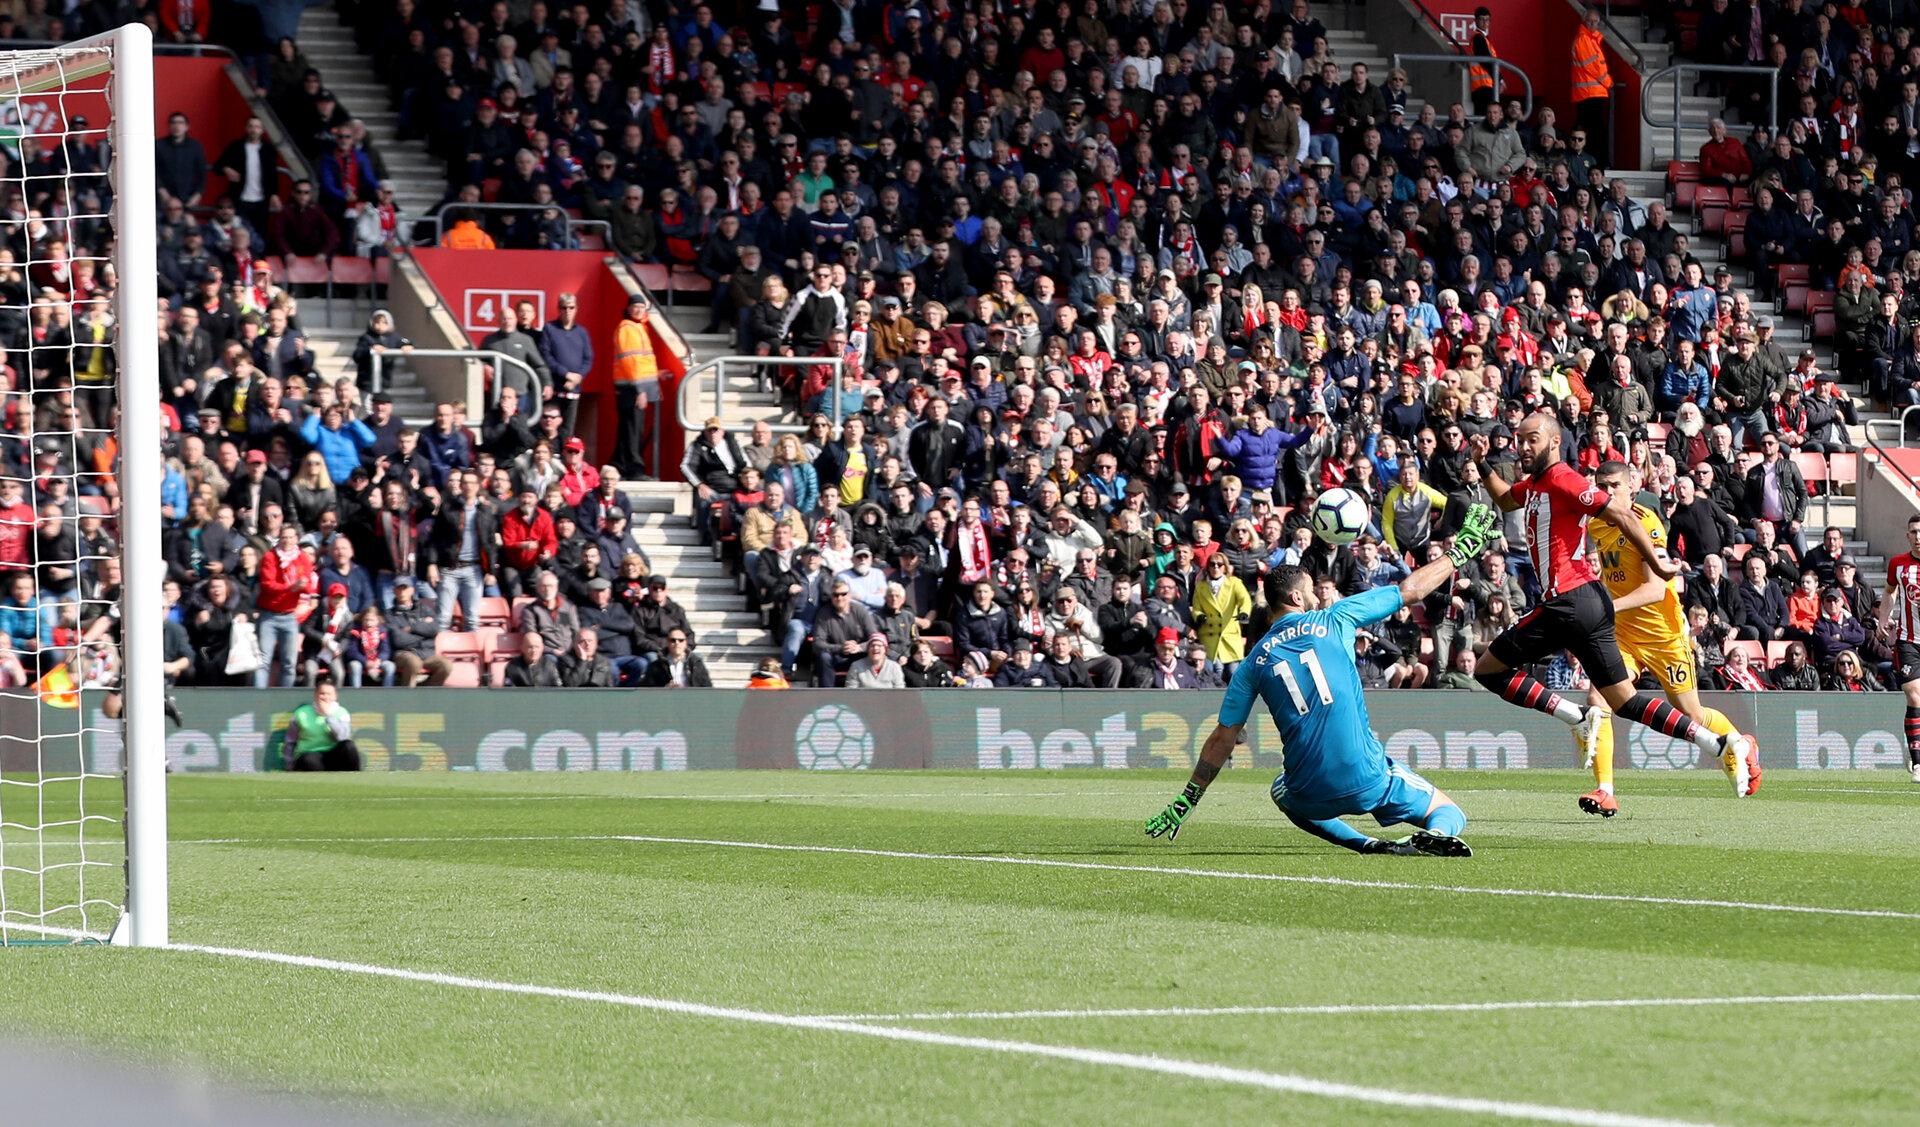 SOUTHAMPTON, ENGLAND - APRIL 13: Nathan Redmond of Southampton scores his second of the game to put his team 2-1 up during the Premier League match between Southampton FC and Wolverhampton Wanderers at St Mary's Stadium on April 13, 2019 in Southampton, United Kingdom. (Photo by Matt Watson/Southampton FC via Getty Images)